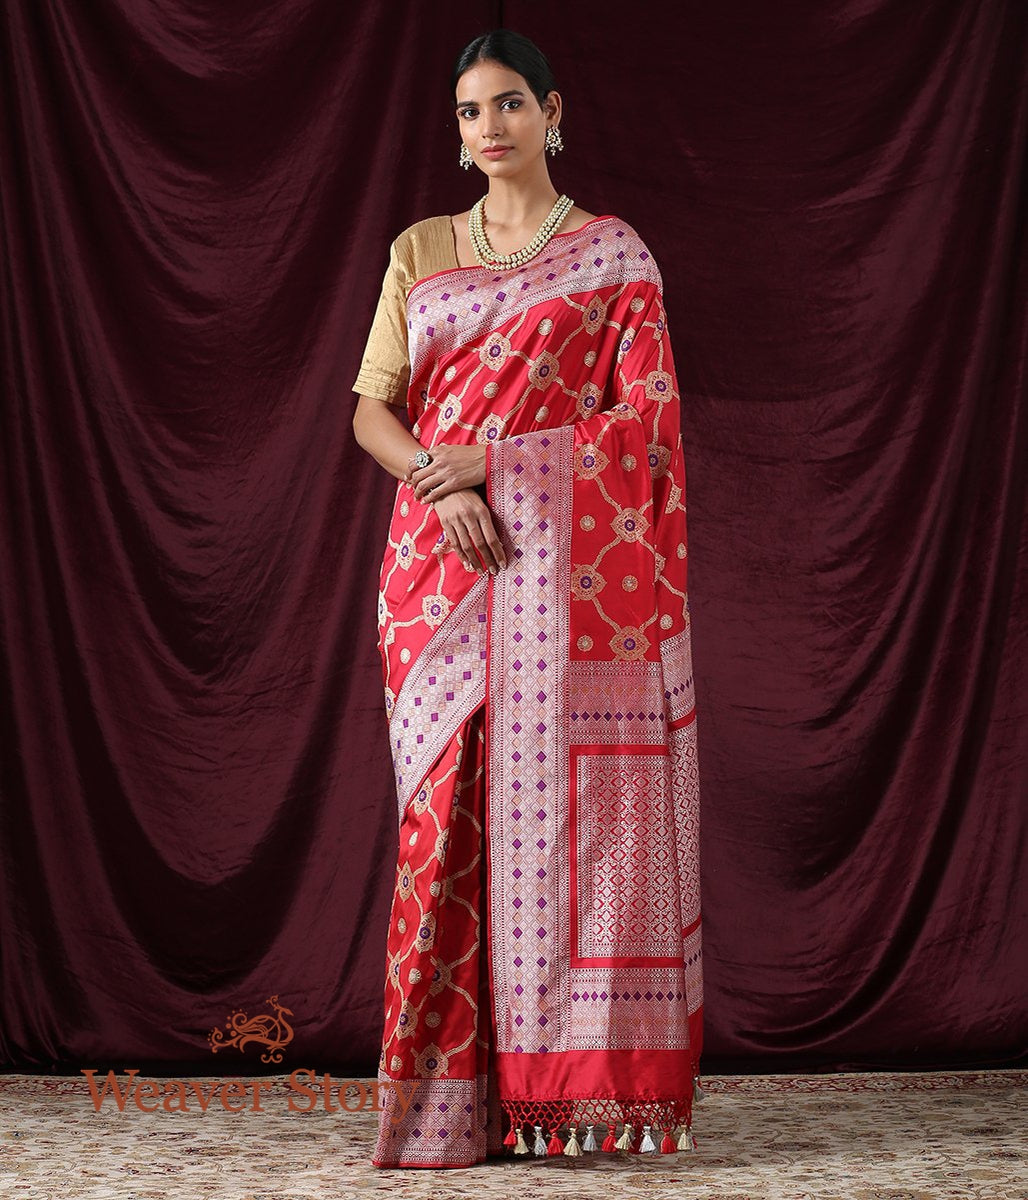 Handwoven Red Kadhwa Jangla Saree with Meenakari